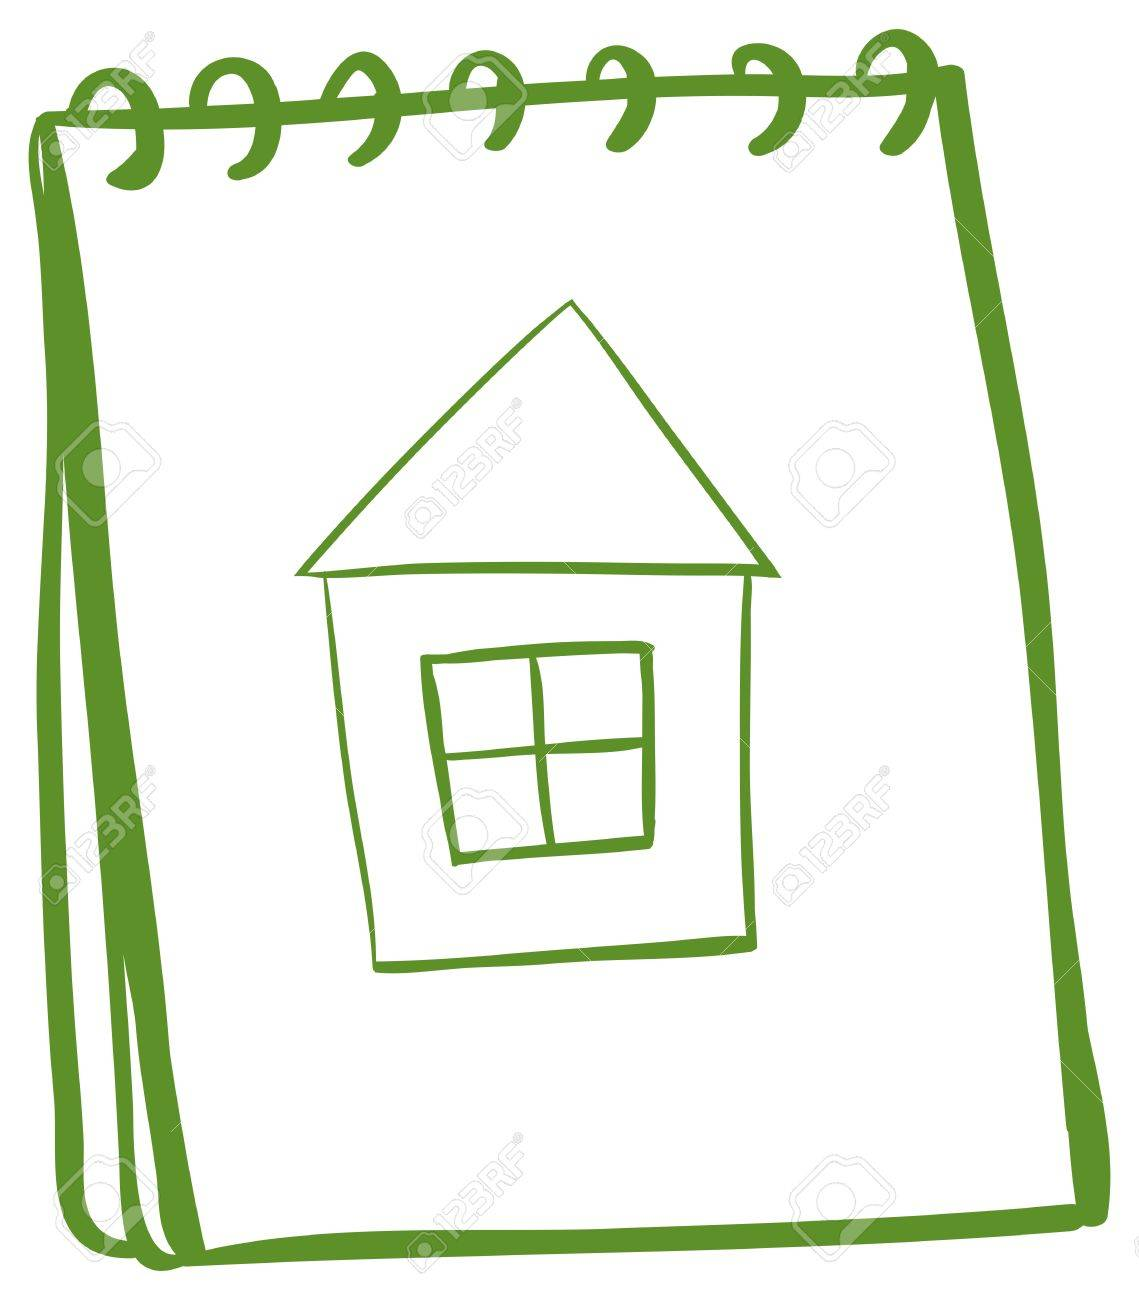 Illustration of a notebook with a sketch of a house at the cover page on a white background Stock Vector - 18983264